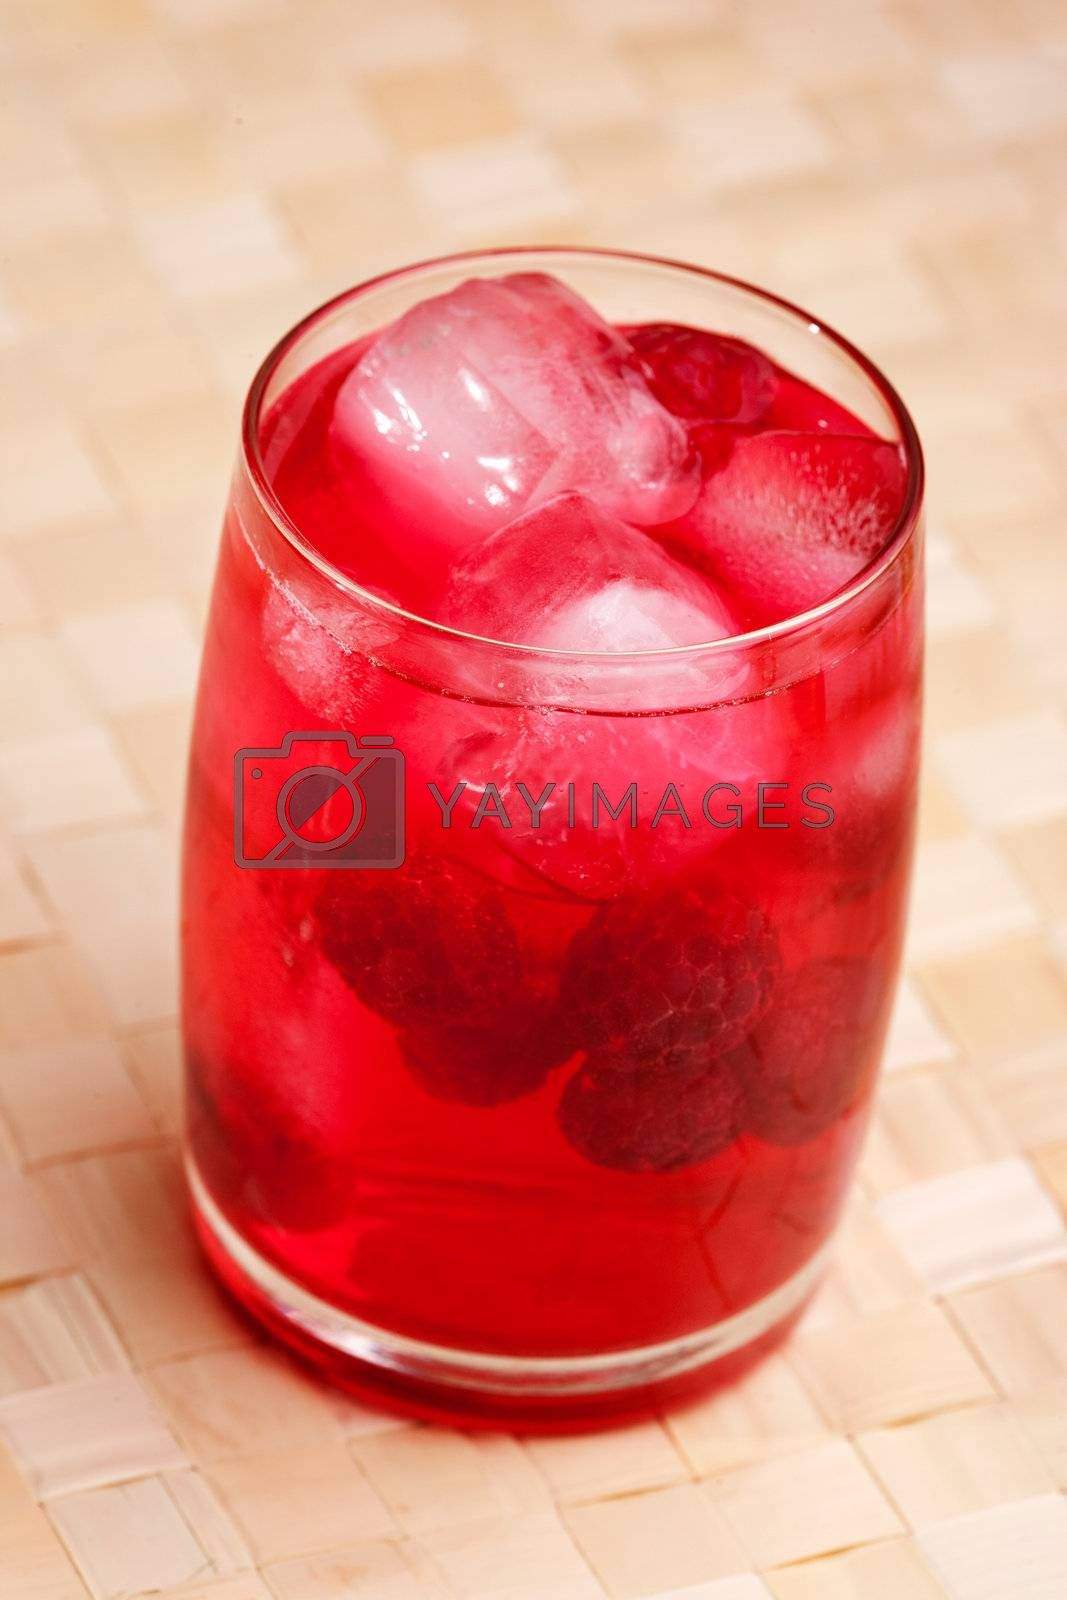 A glass of sparkling raspberry punch outdoors in a natural setting